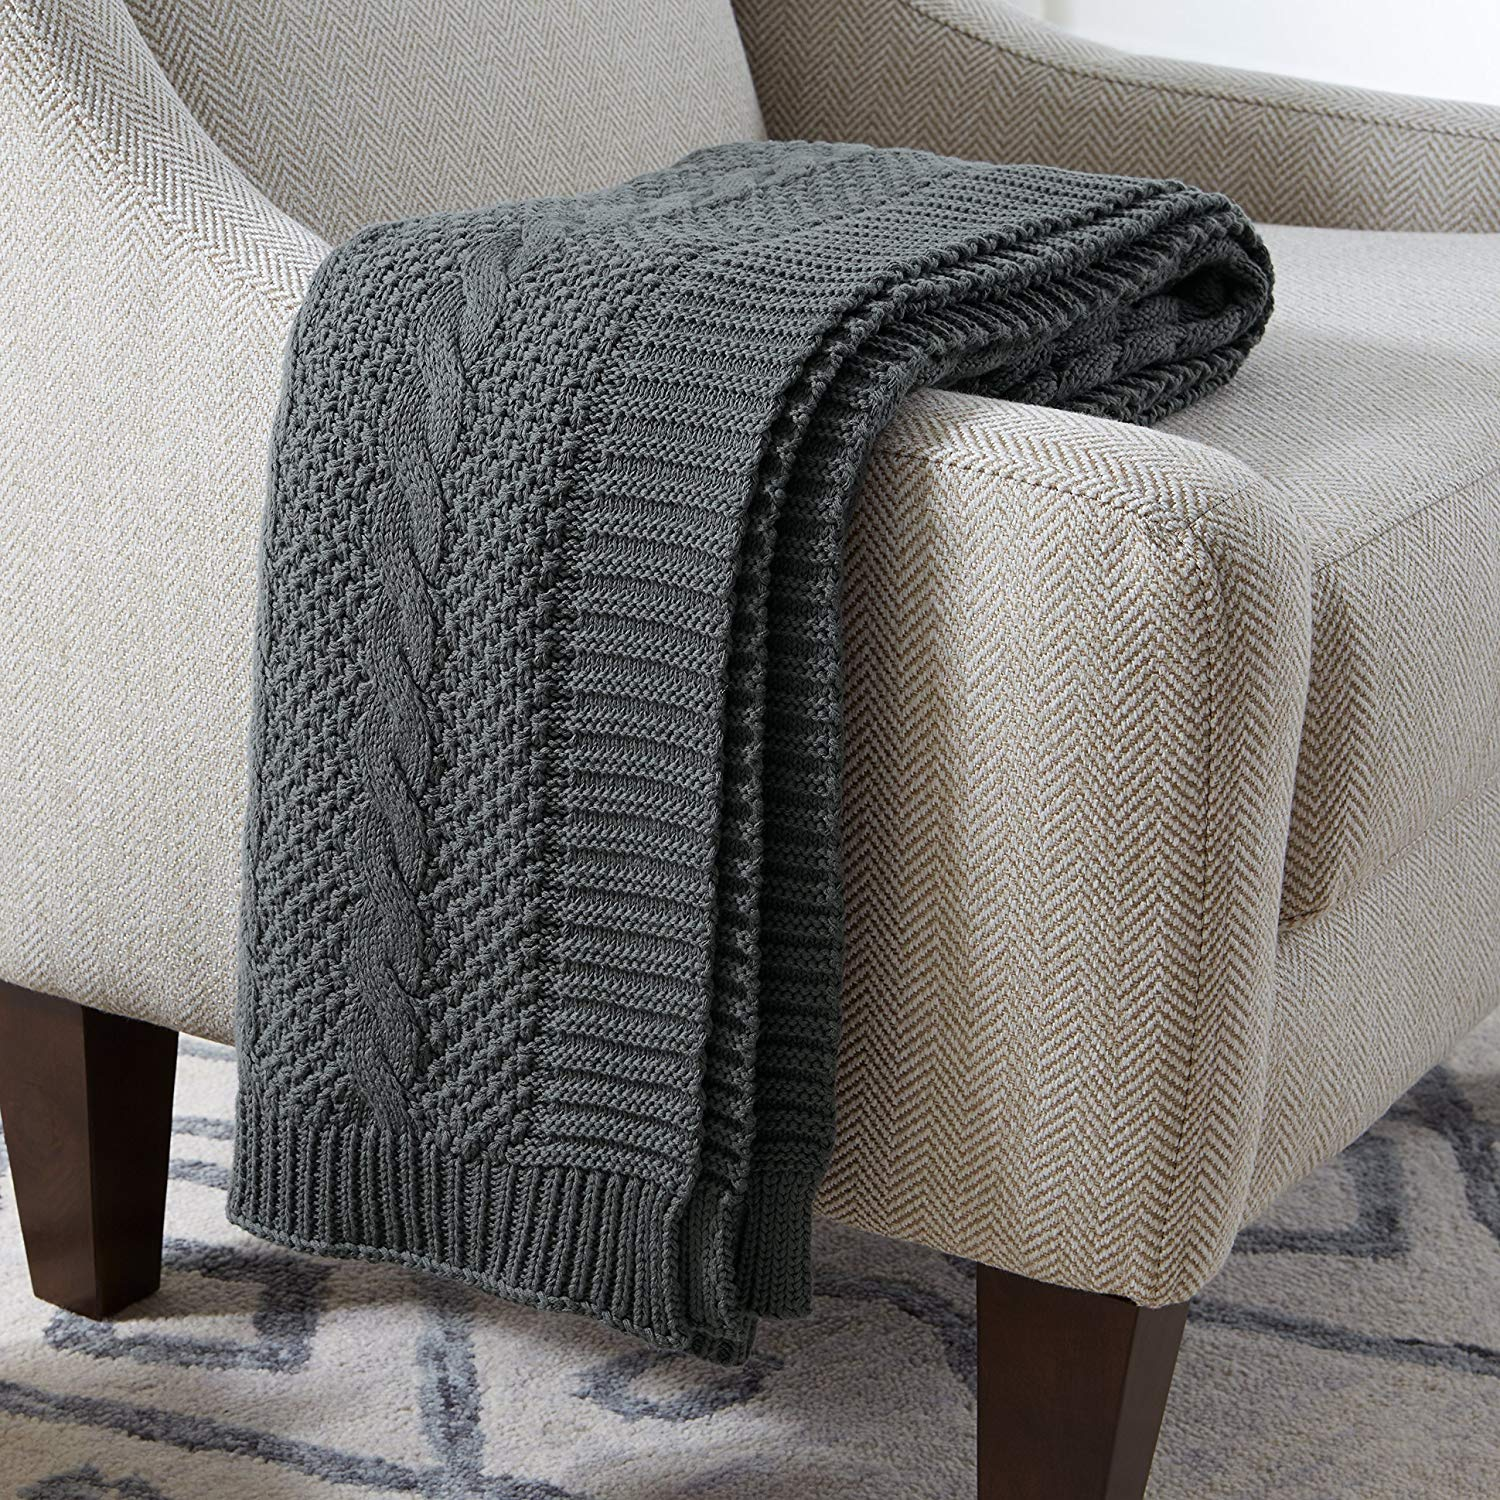 Stone & Beam Transitional Chunky Cable Knit Throw